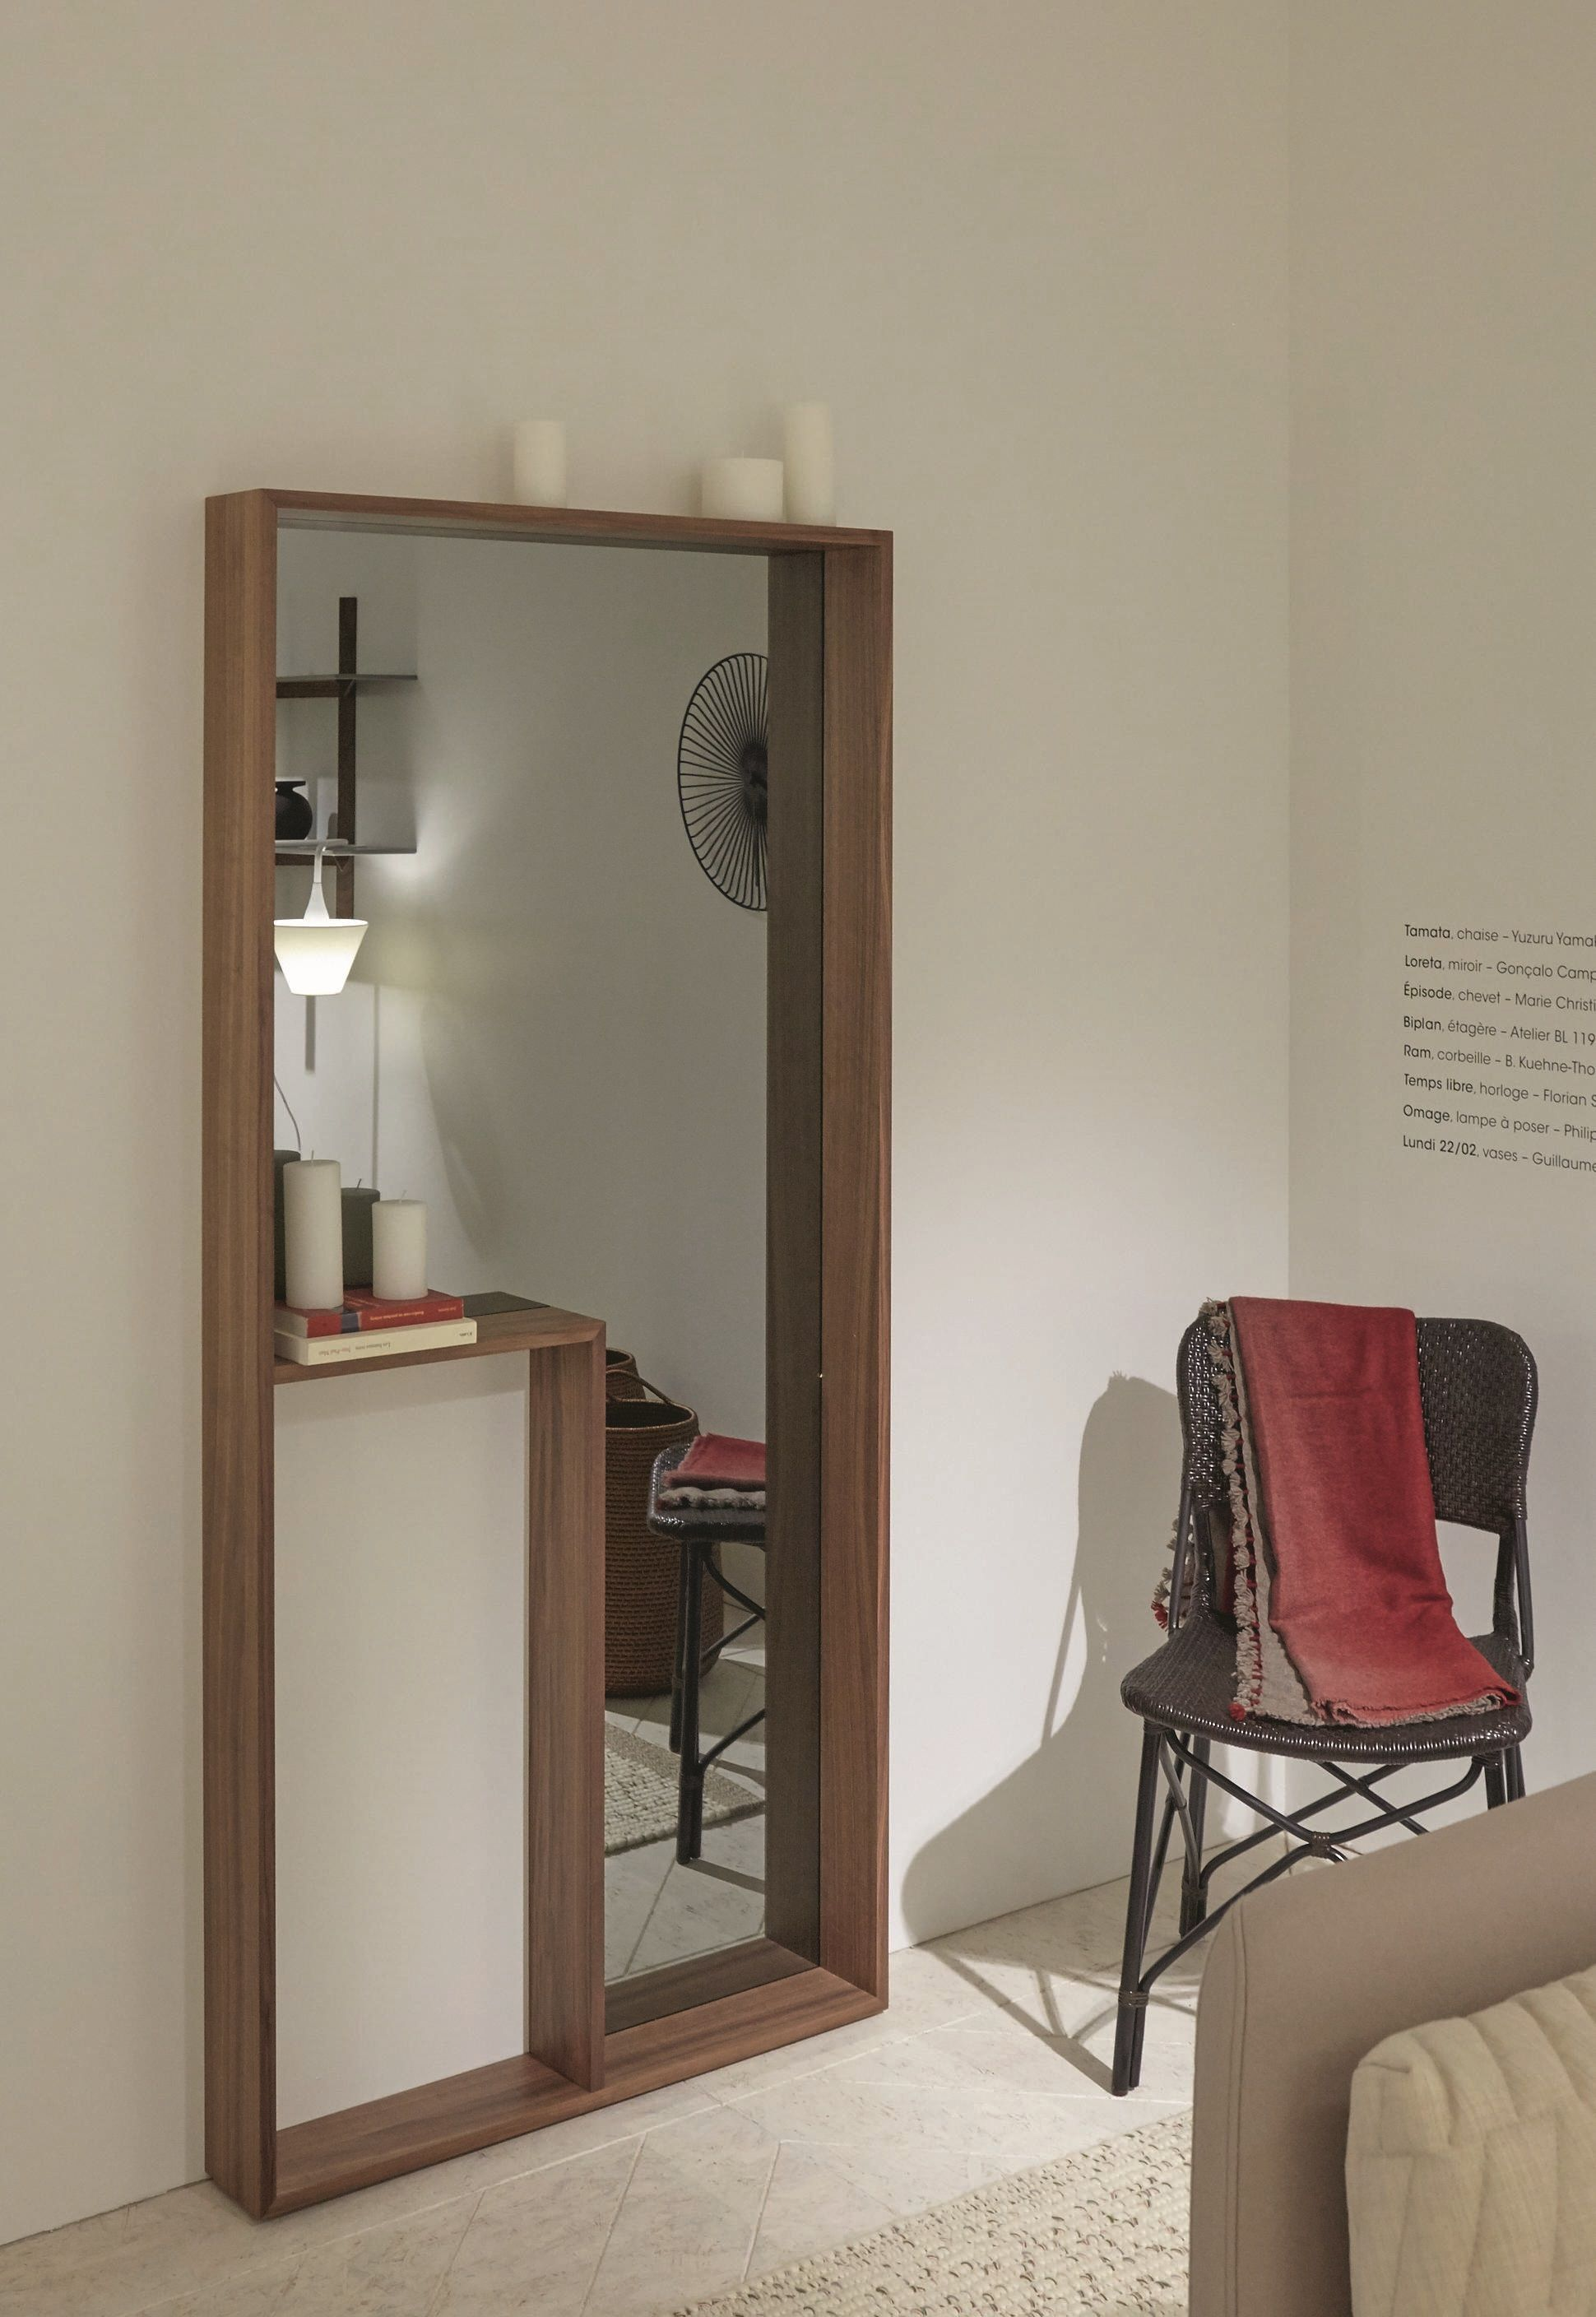 Ligne Roset Riga The Loreta Mirror By Gonçalo Campos Makes A Powerful Statement